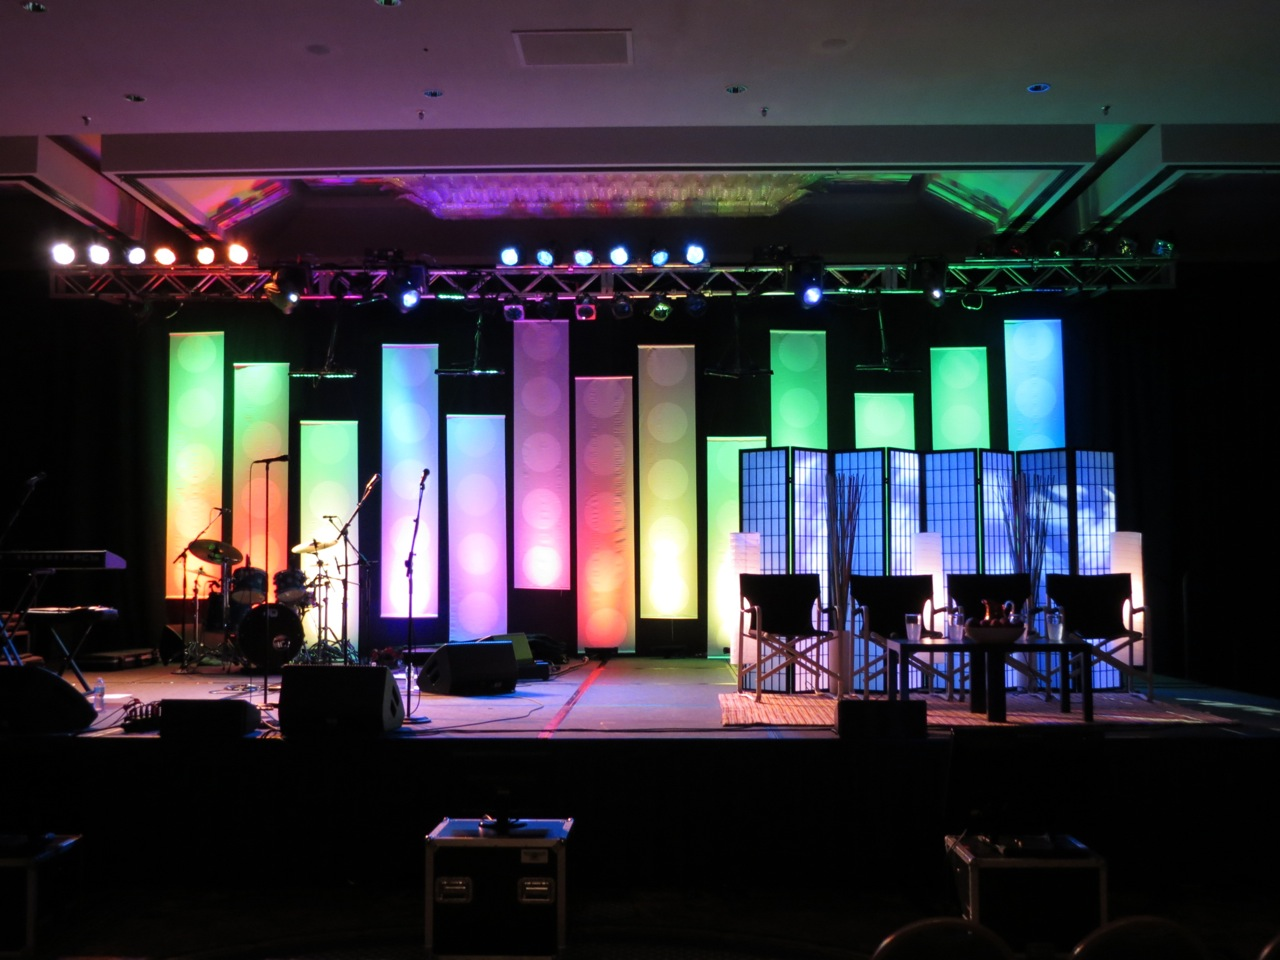 dot banners church stage design ideas - Church Stage Design Ideas